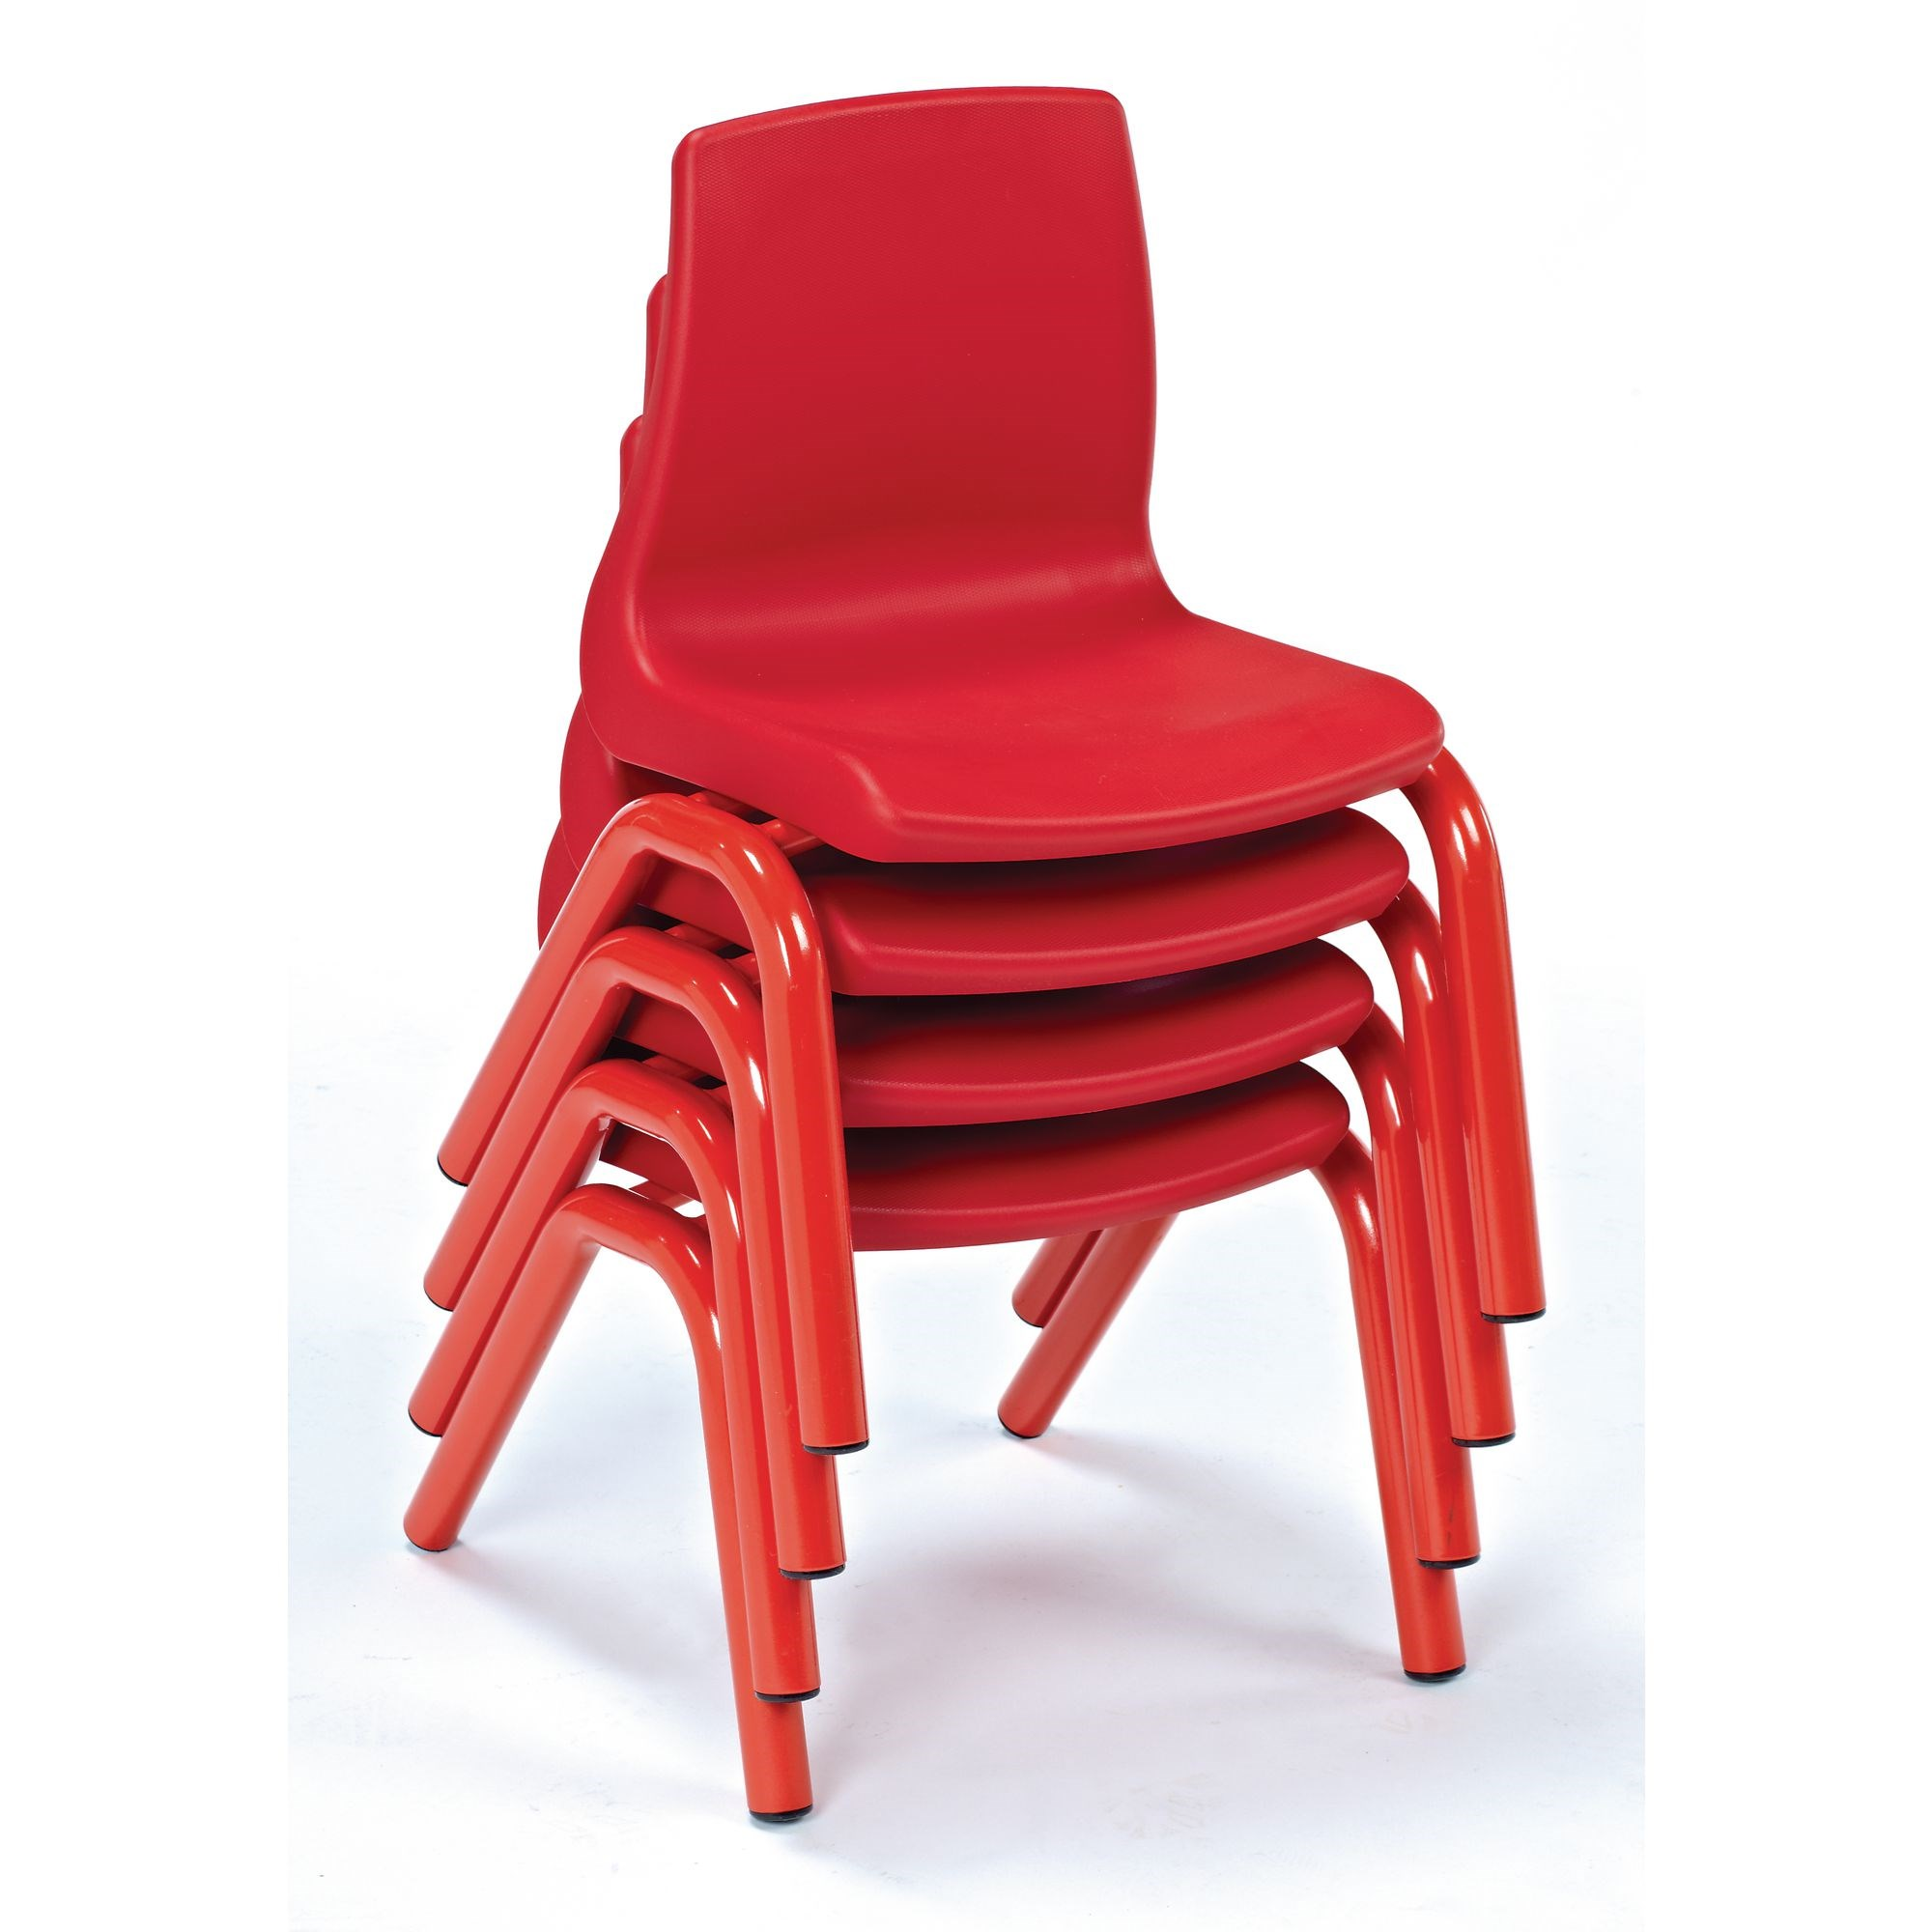 Harlequin Chairs Pre Sch Lime